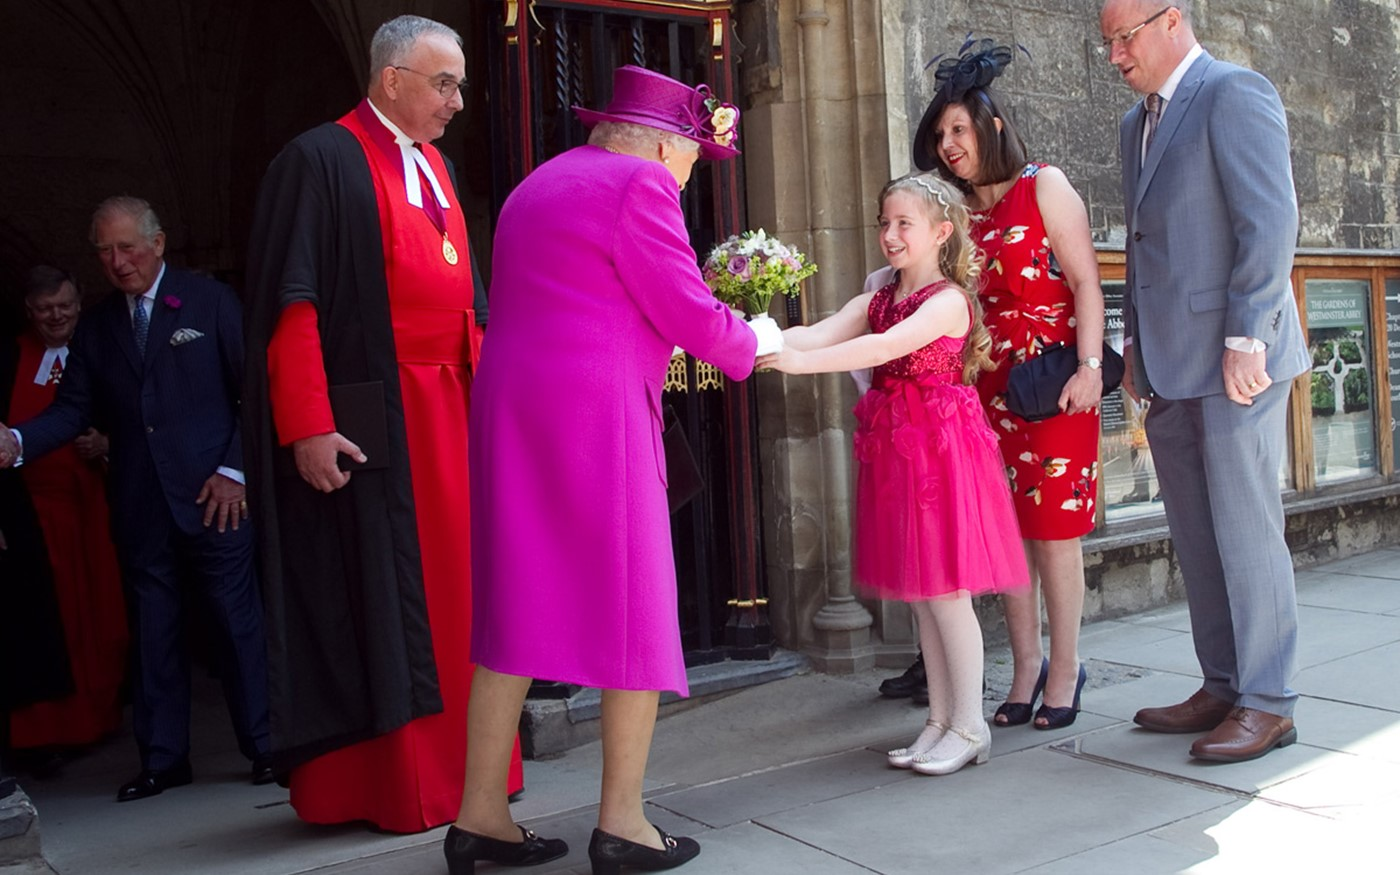 The Queen receives a posy from Sarah Bish, aged 8